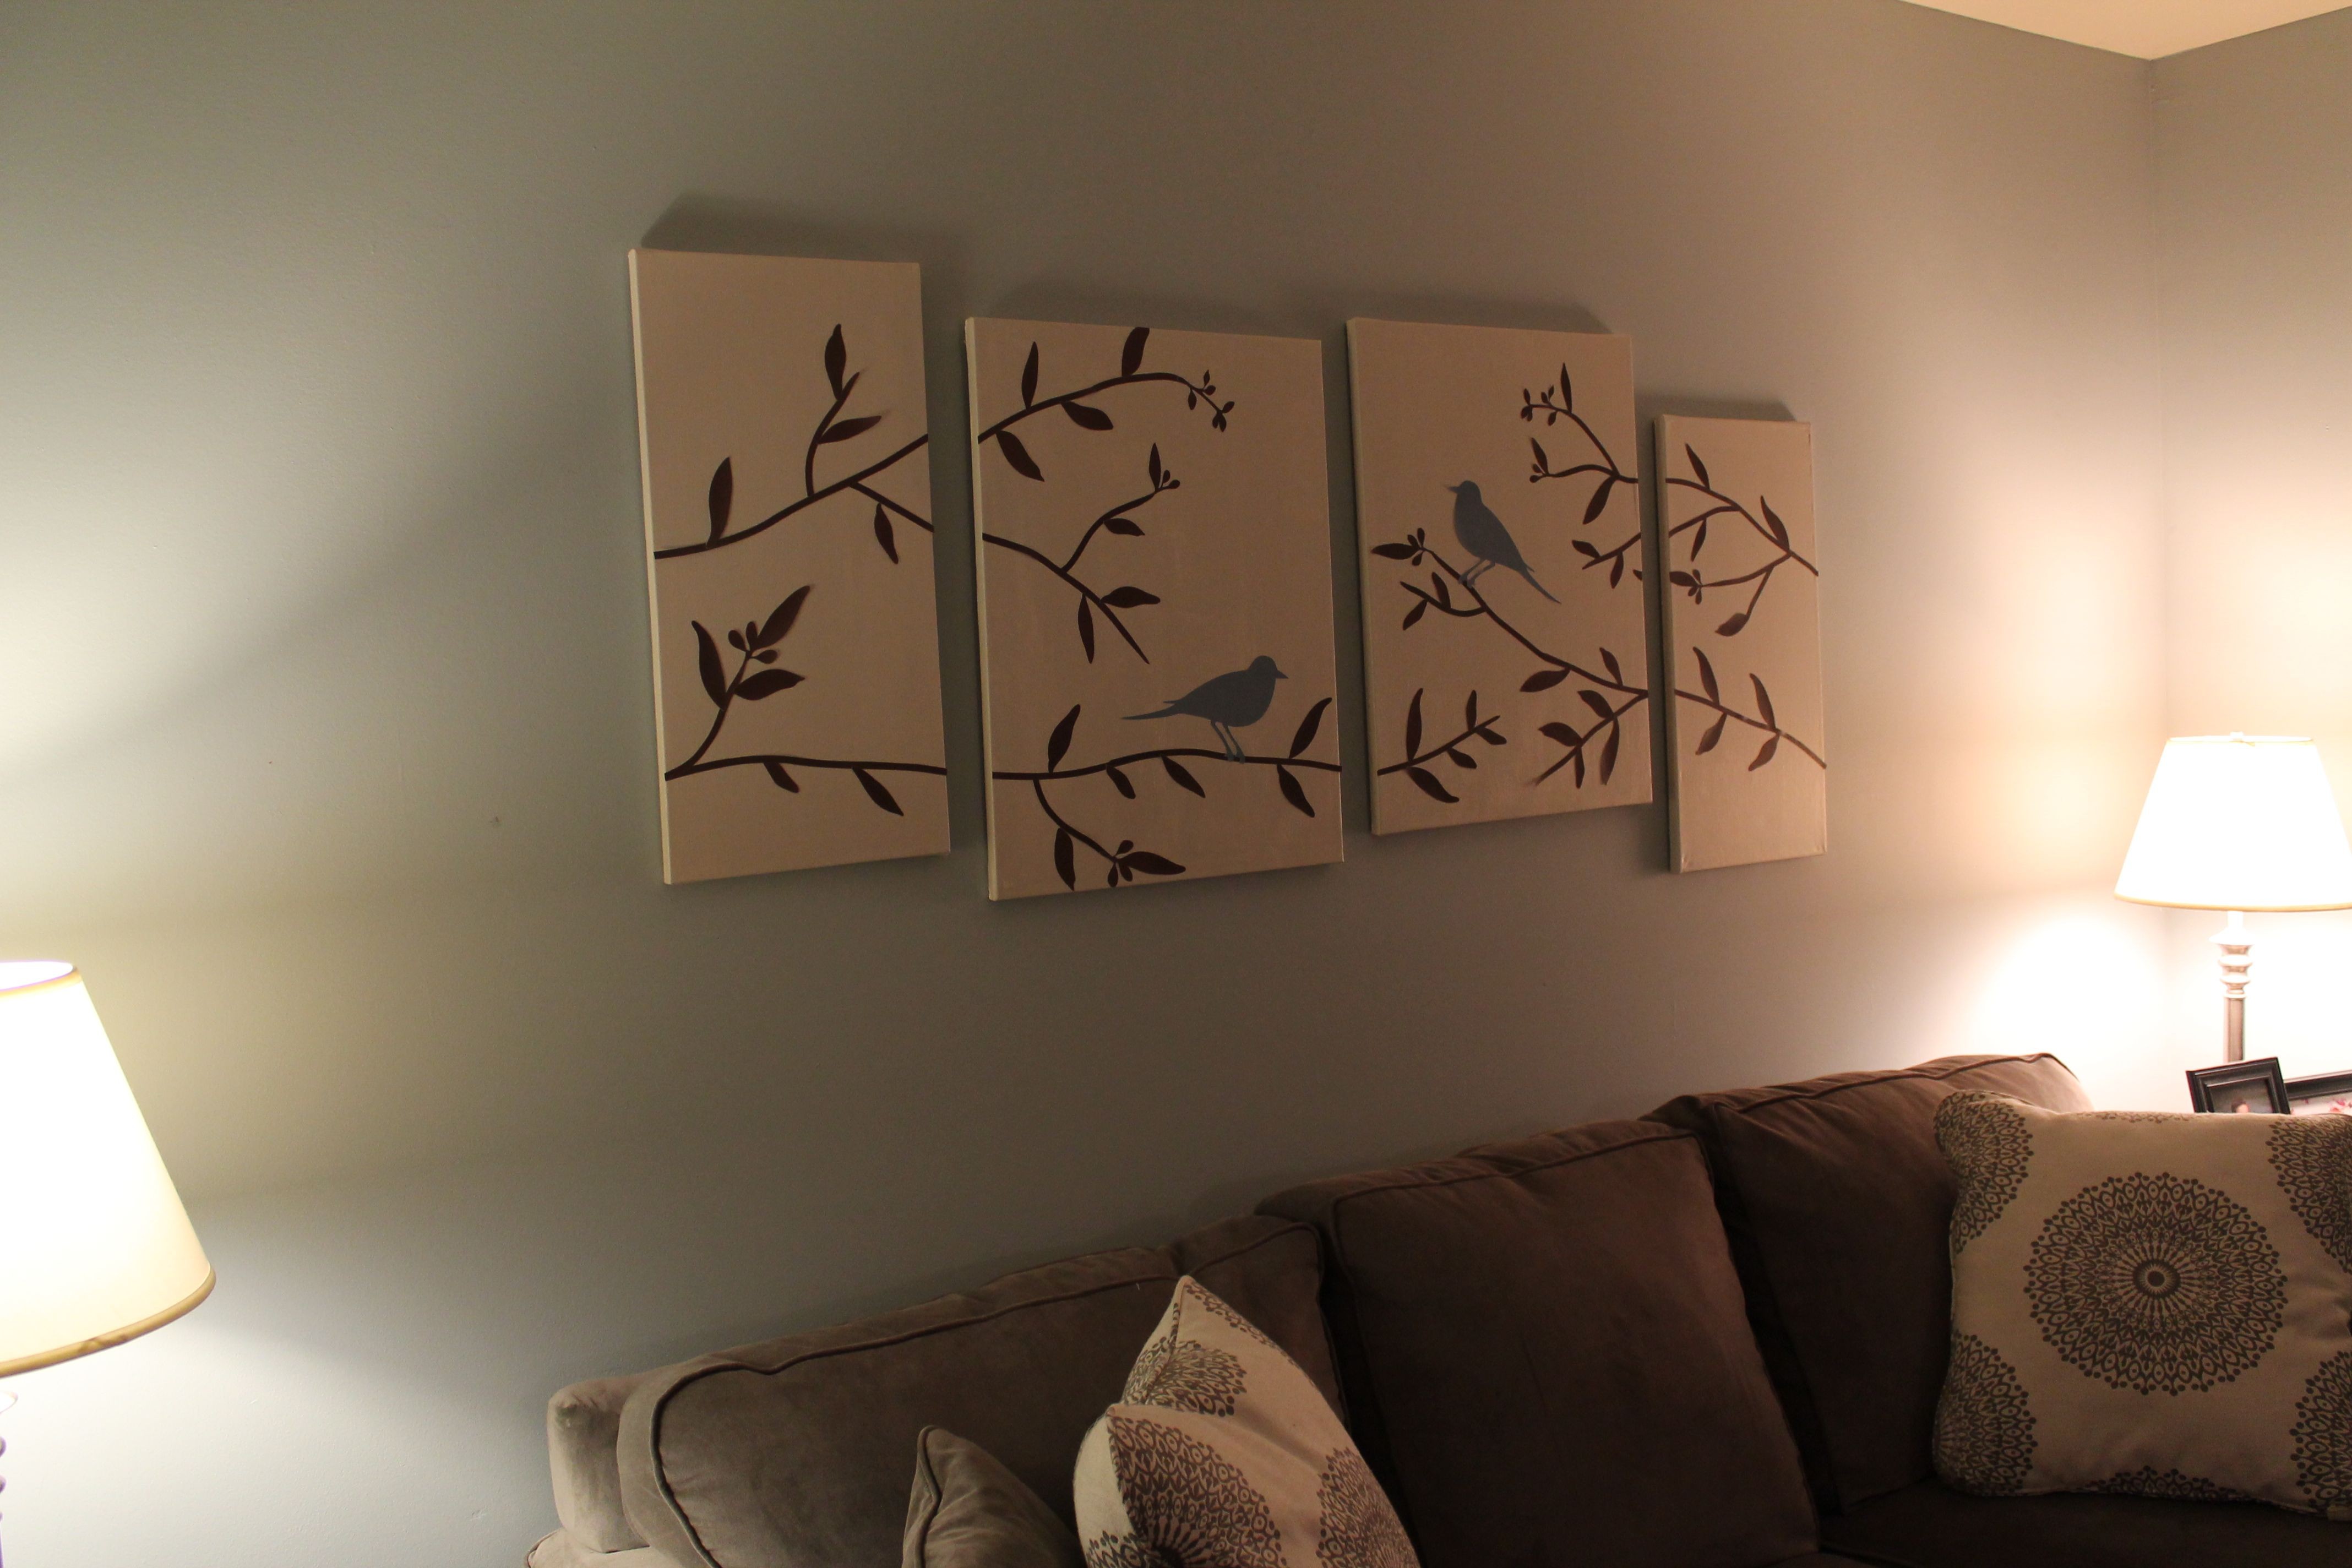 Diy Canvas Art For Living Room Ikea Design Easy Painting Ideas Wall Your Birds Branches